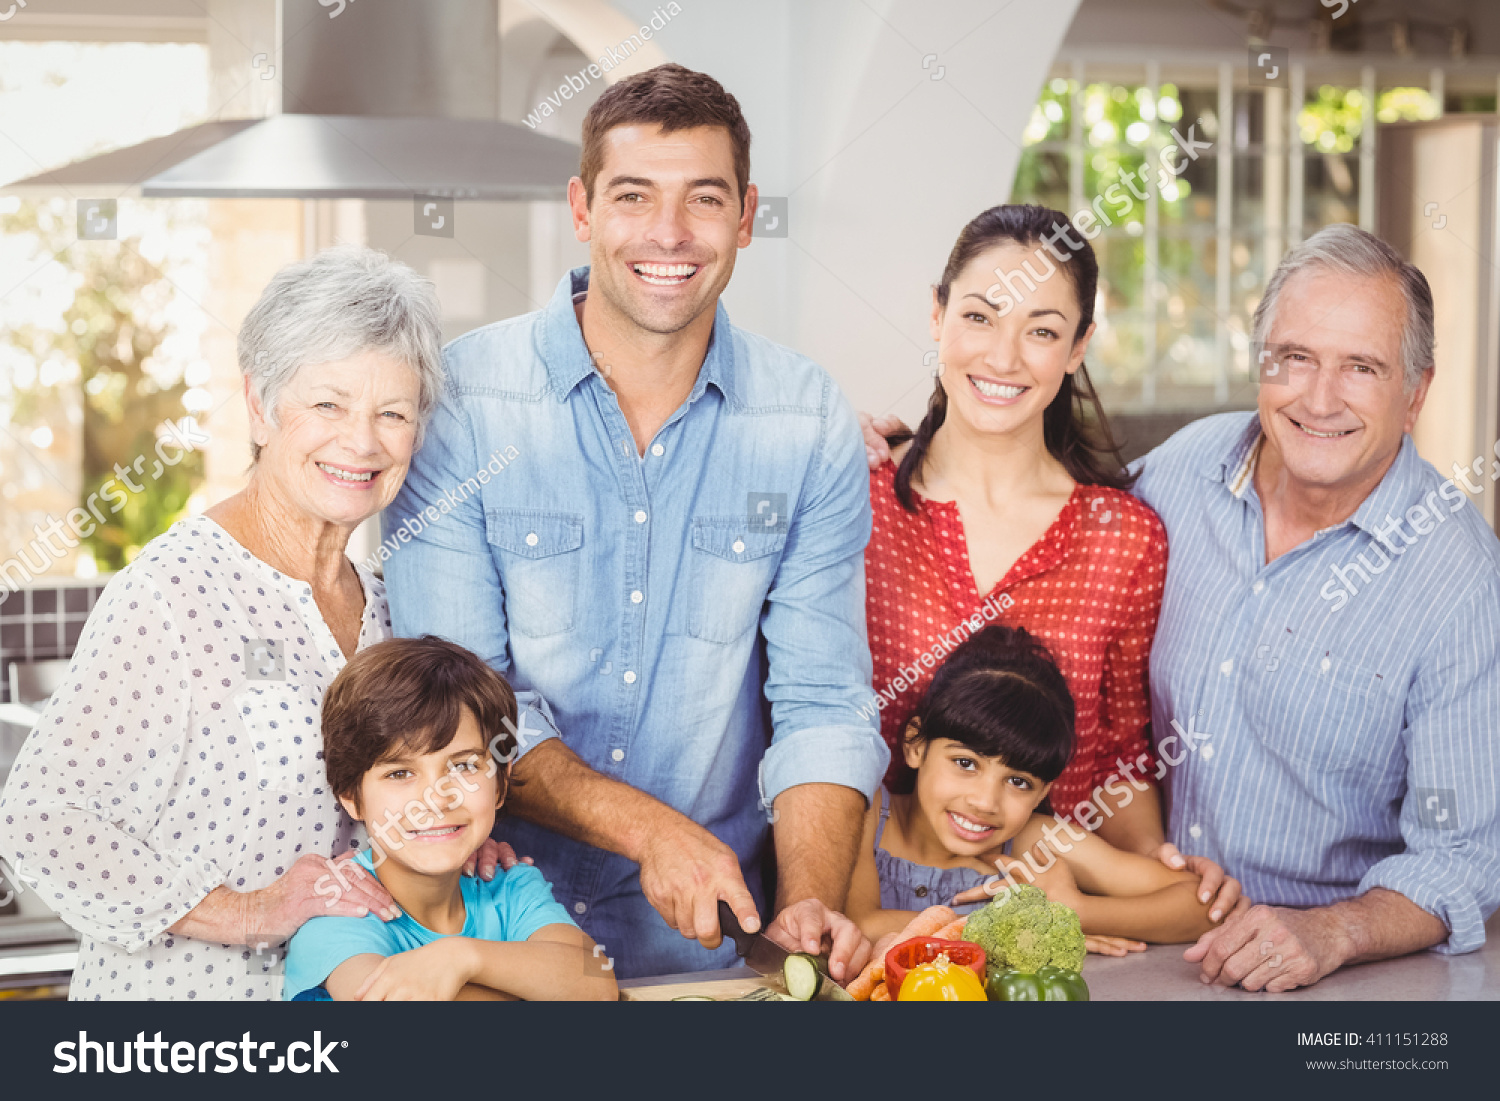 Happy family in kitchen - Portrait Of Happy Family In Kitchen At Home